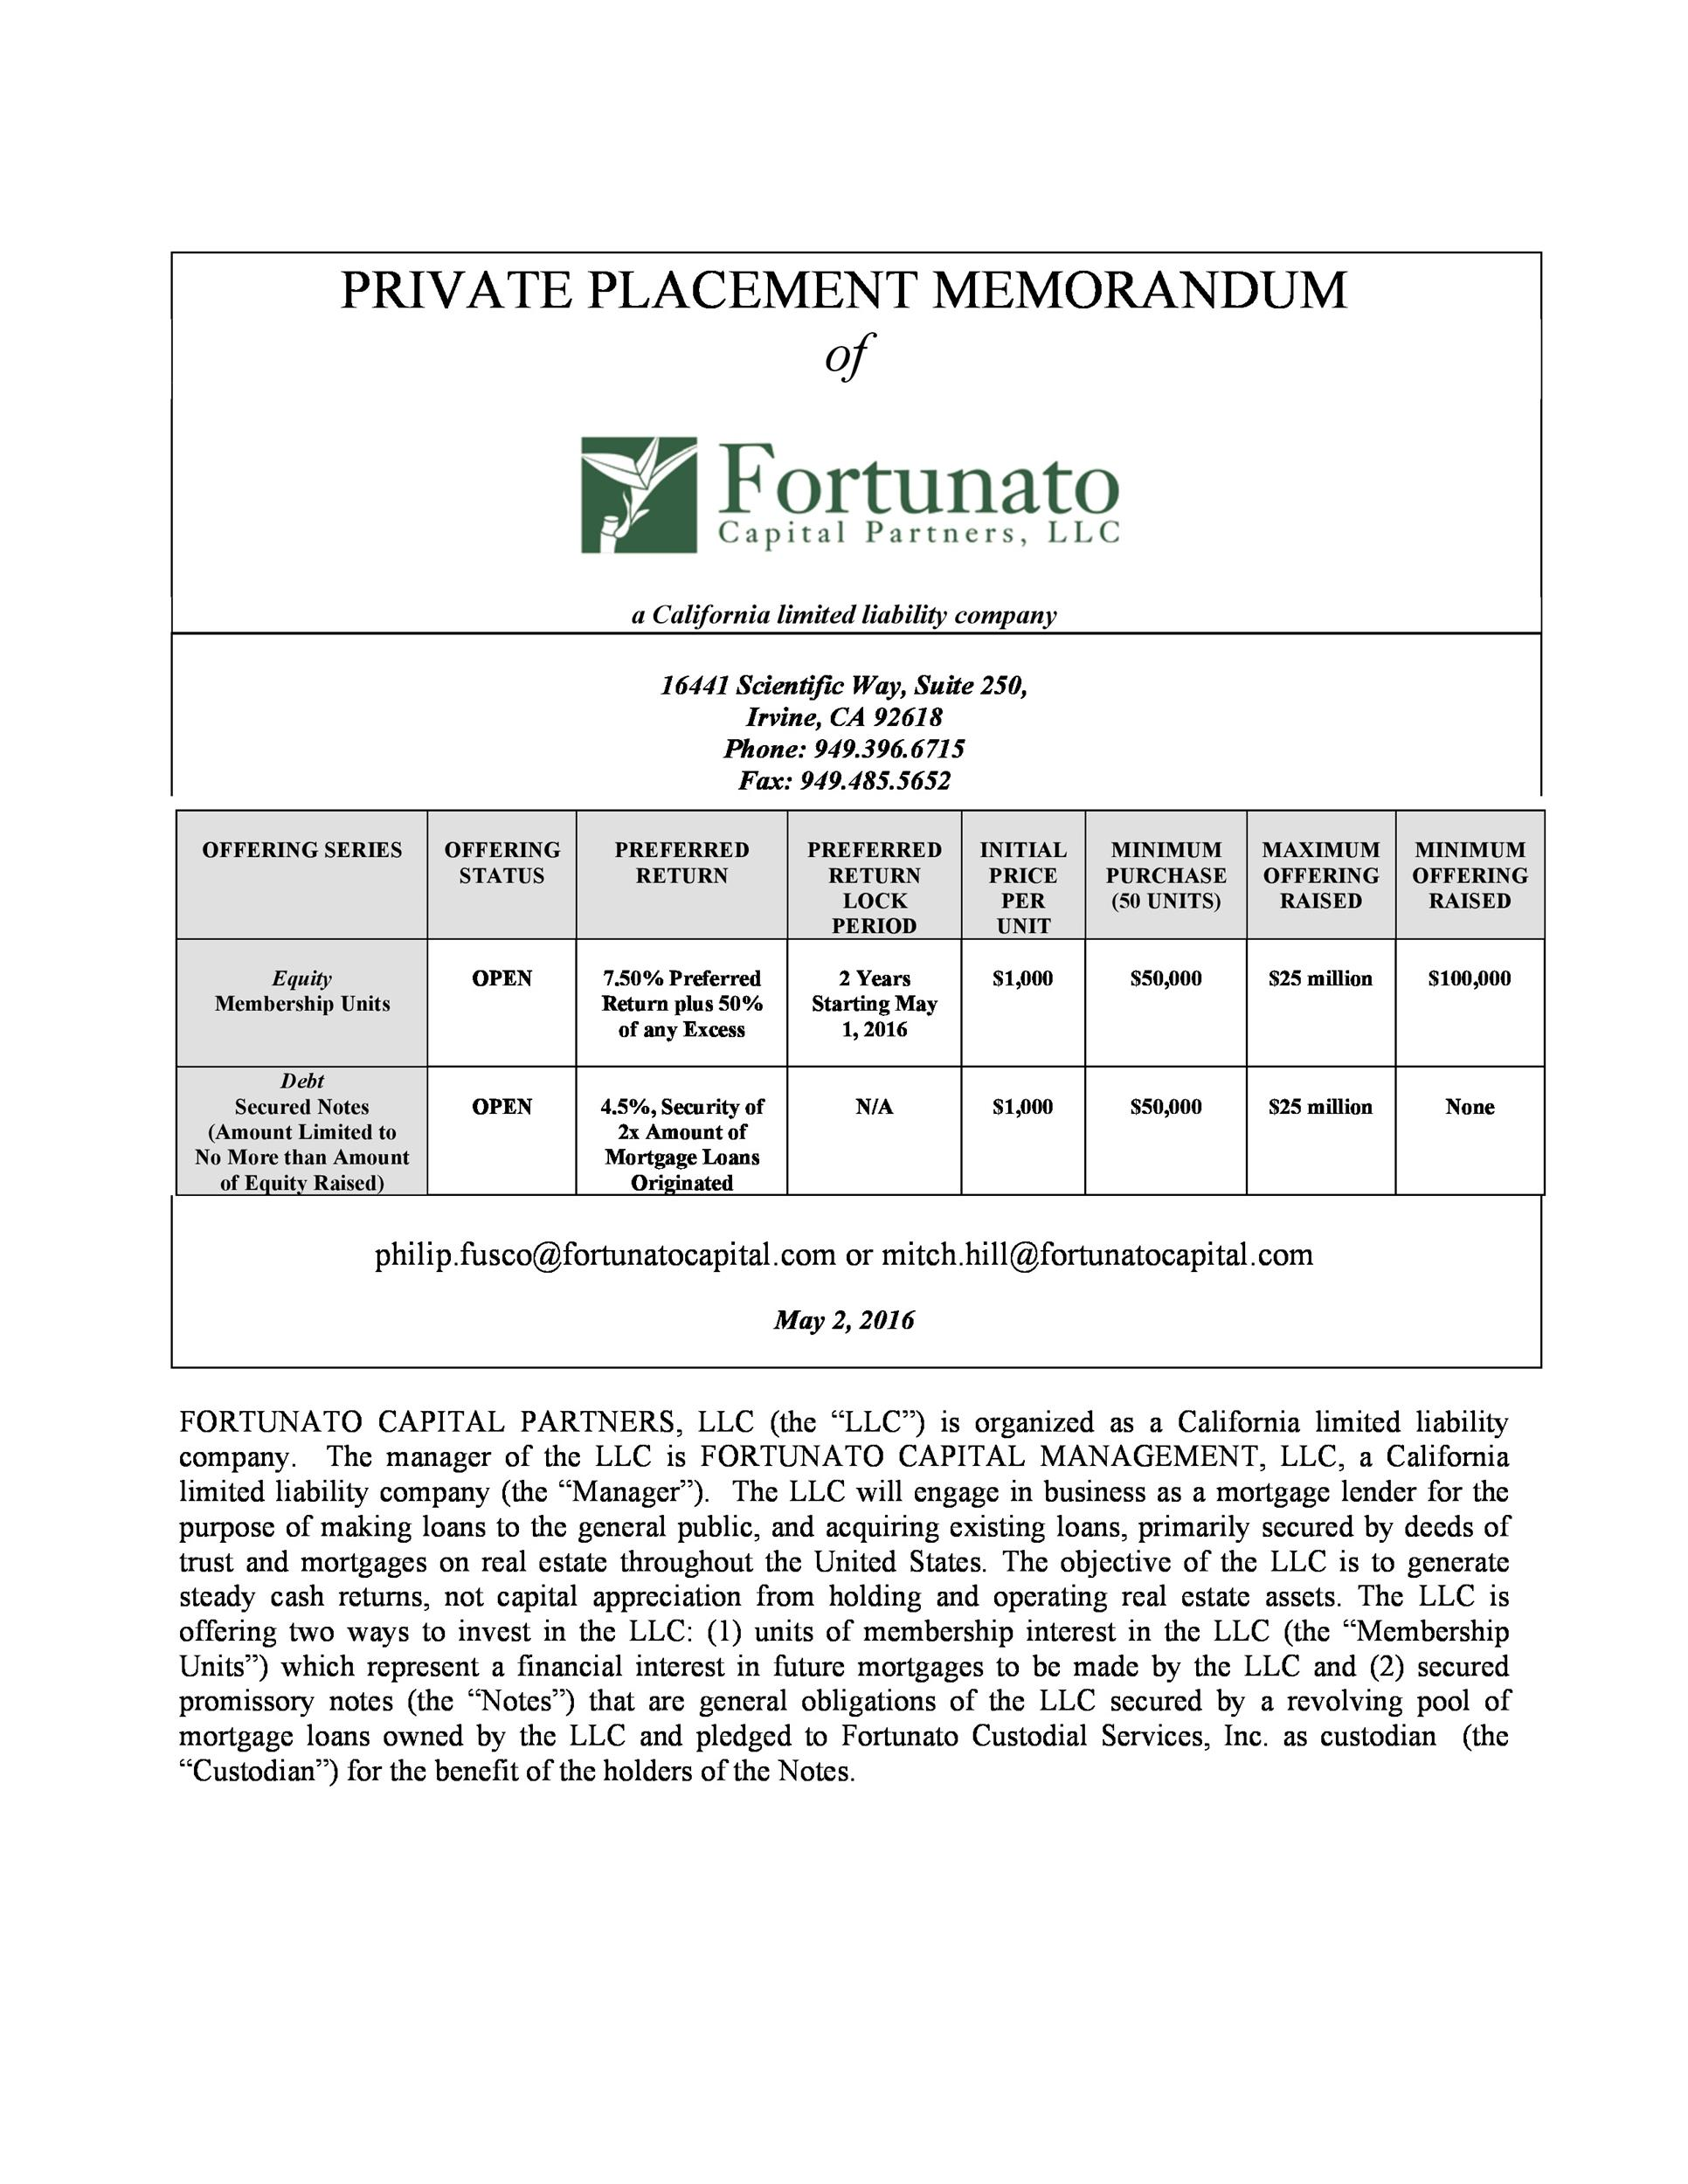 Free private placement memorandum template 37